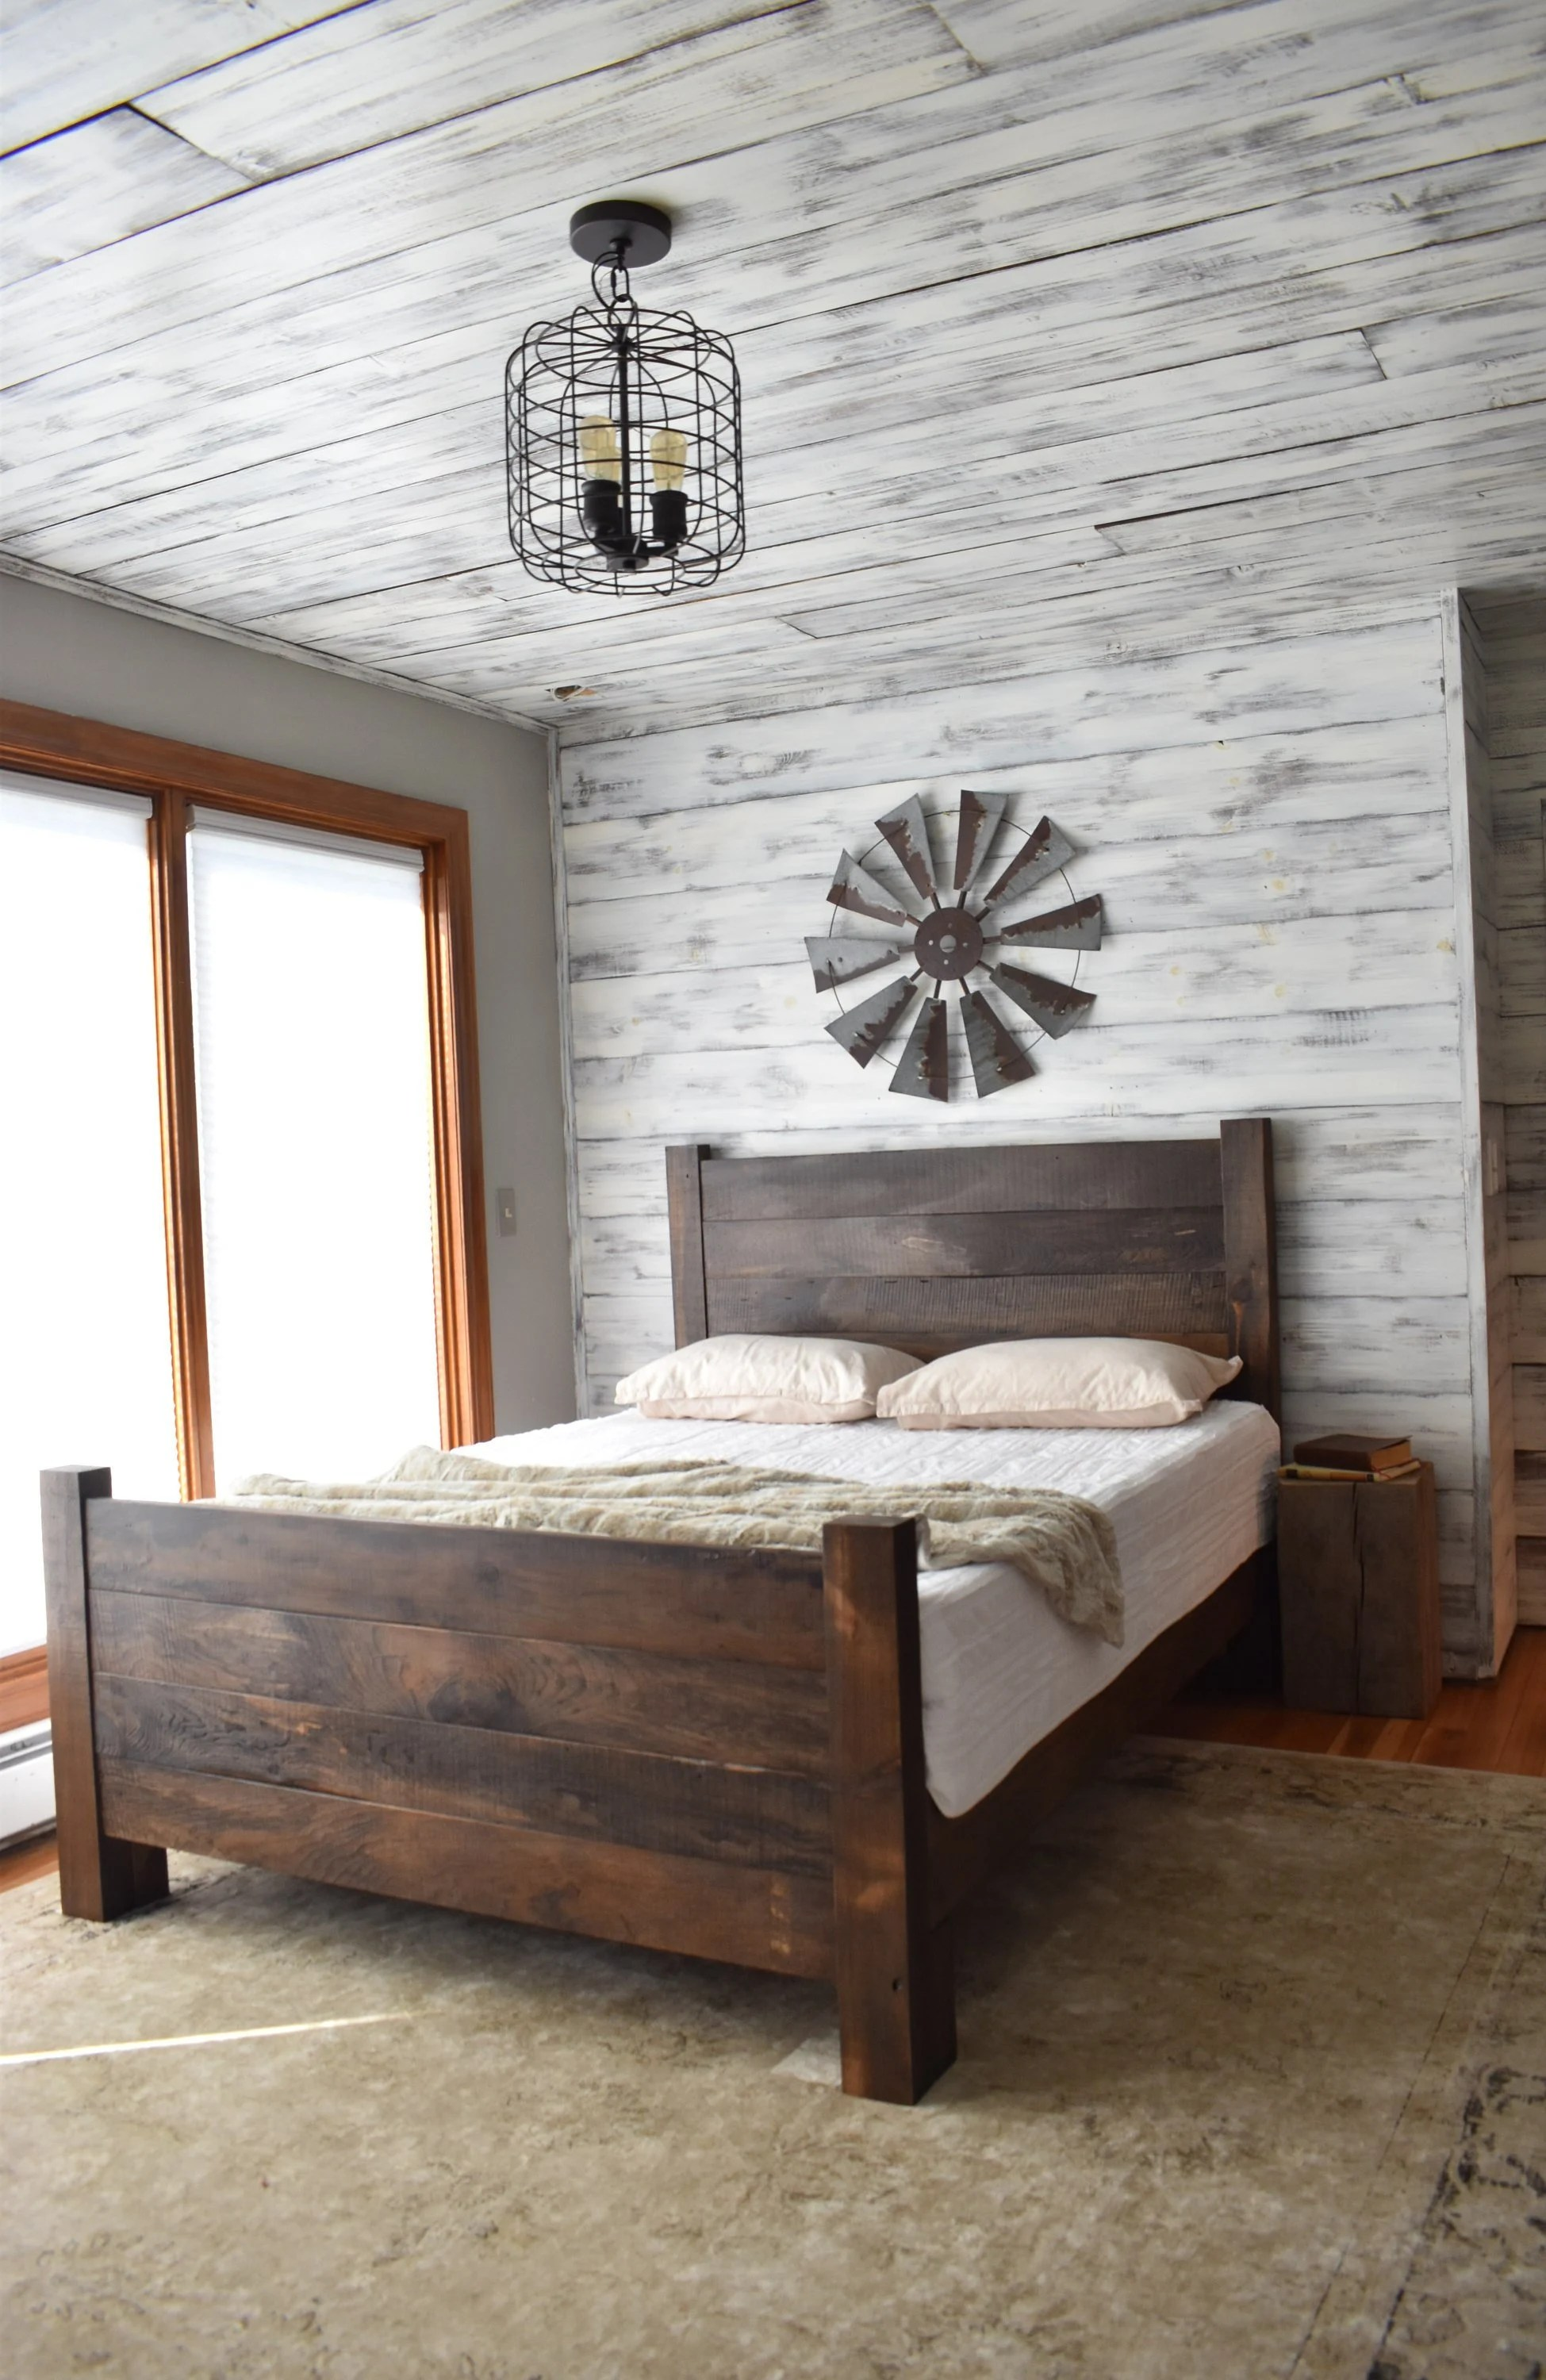 Bed Queen Wood Bed Frame Platform Bed Queen Bed King Headboard Modern Farmhouse Bedroom Furniture